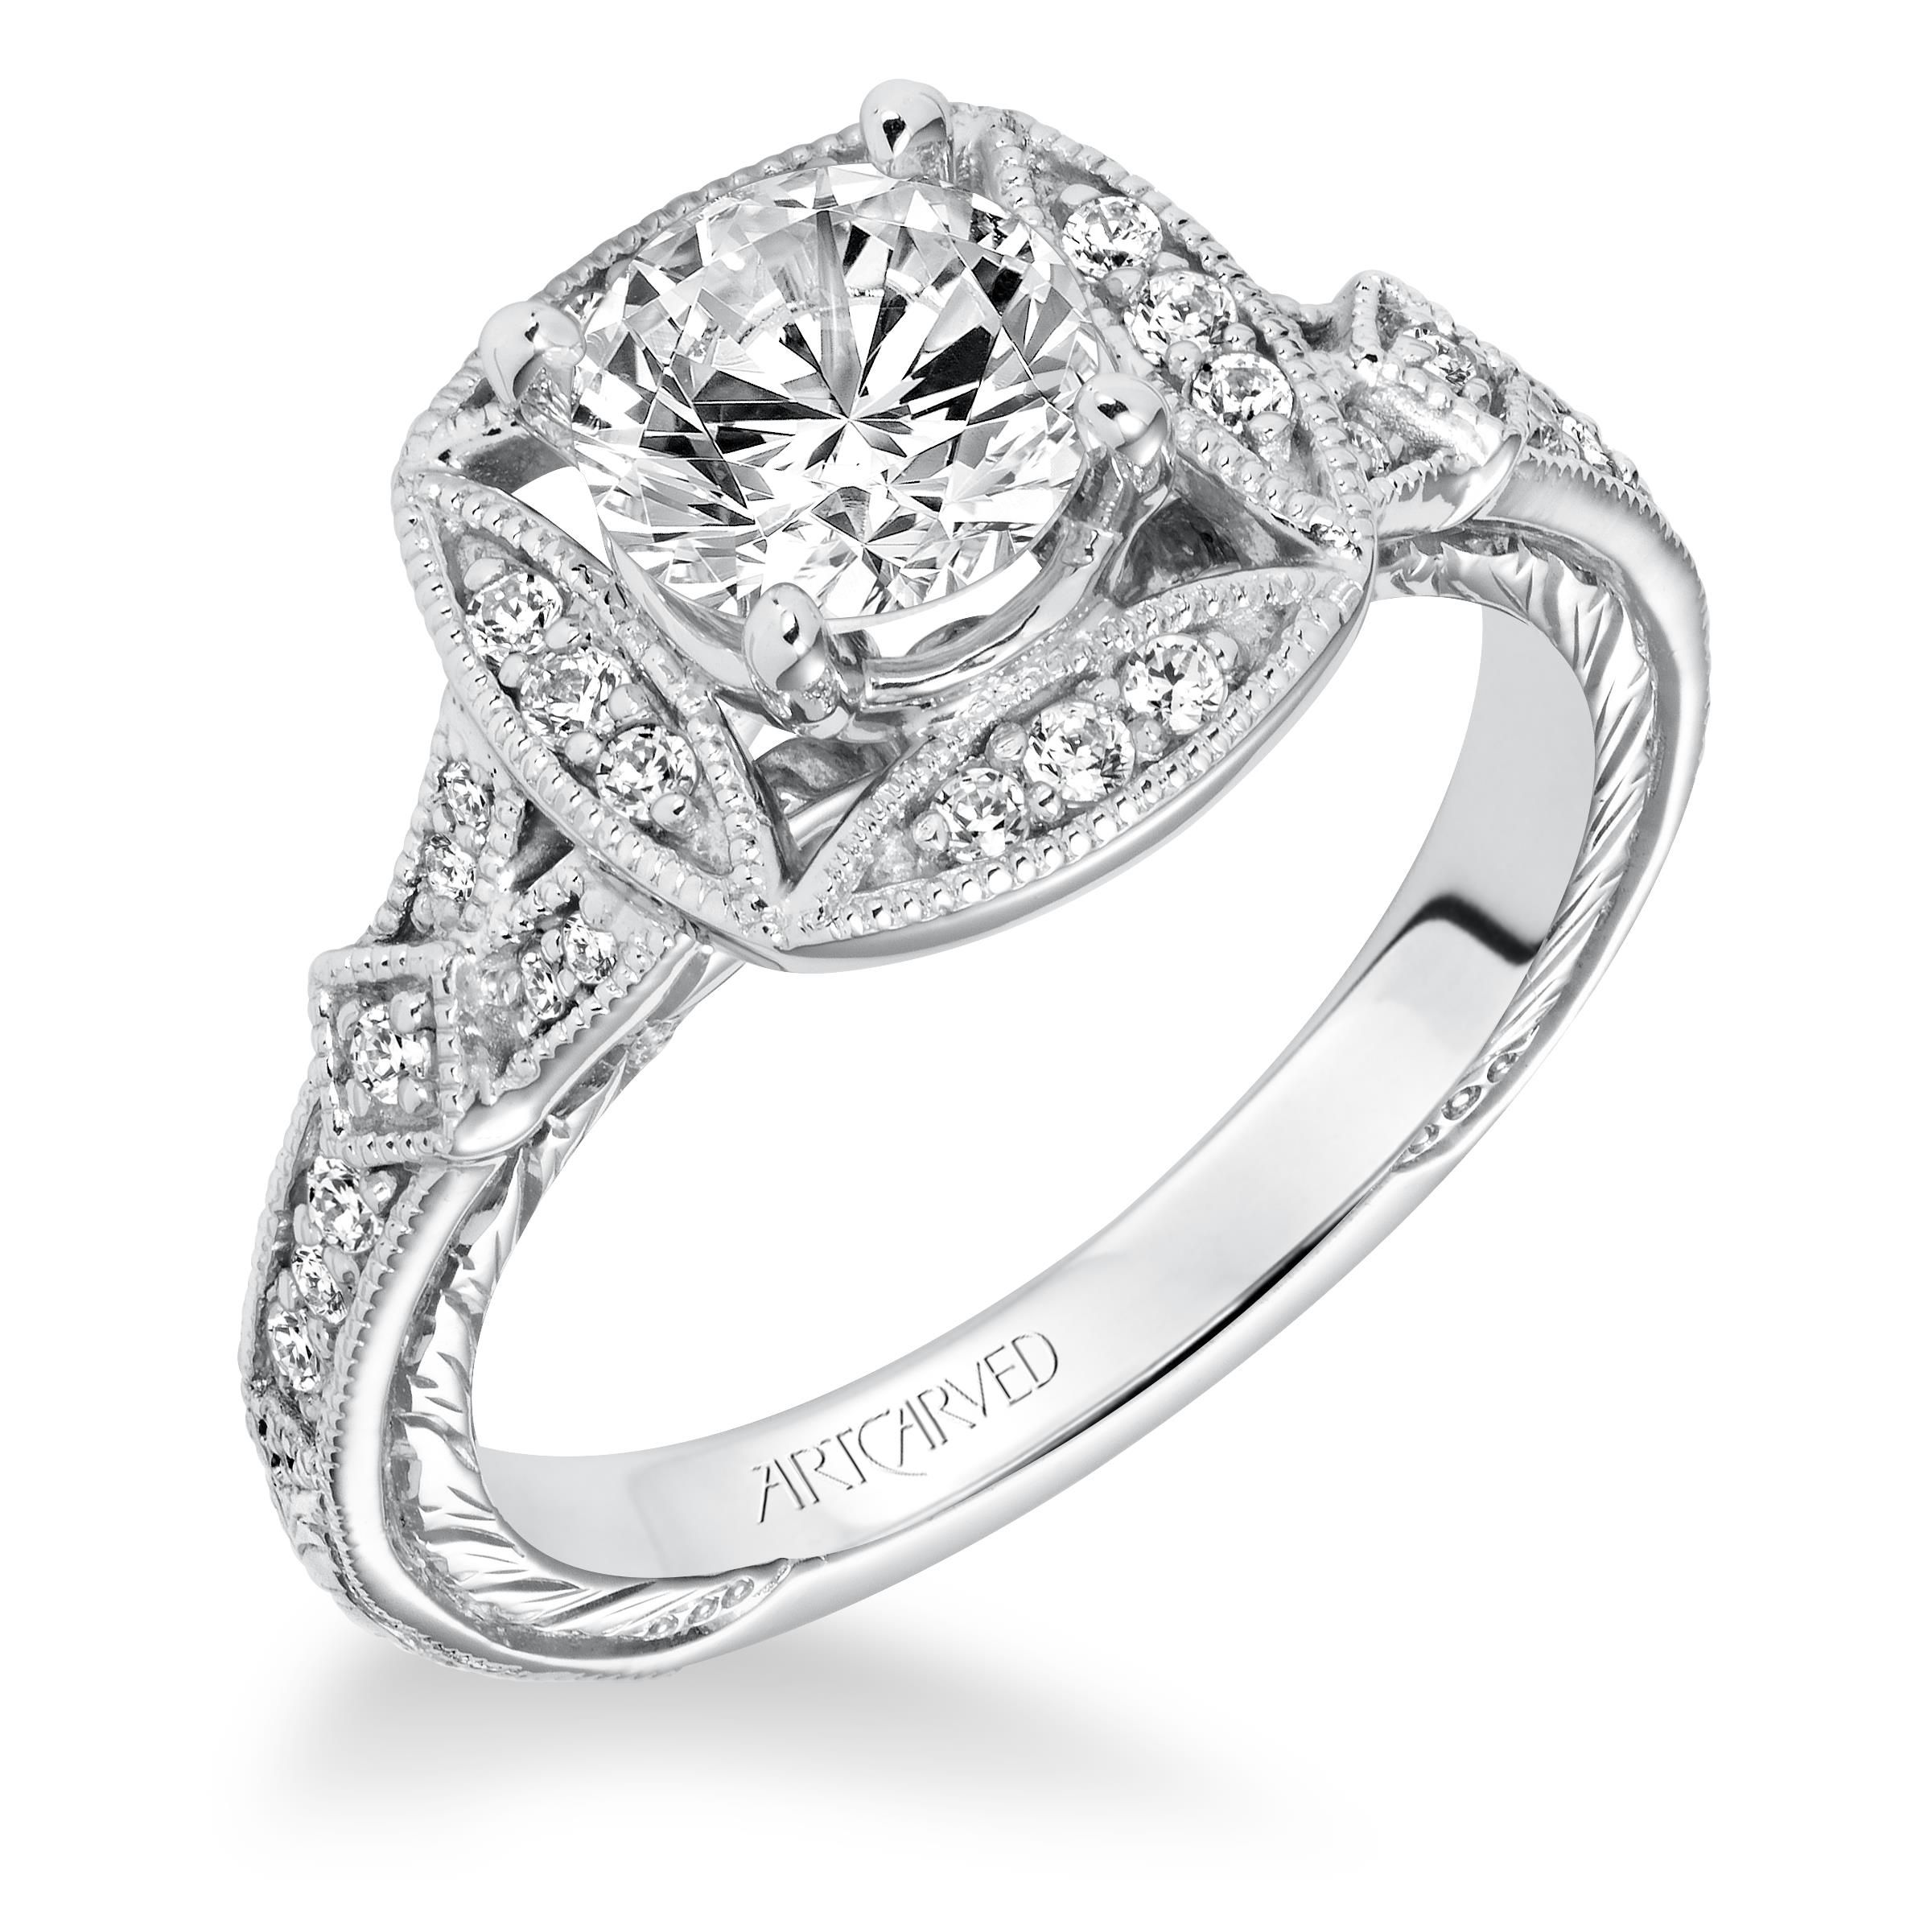 collections detailed rings engagement silverscape wedding diamond sylvie ring collection designs band